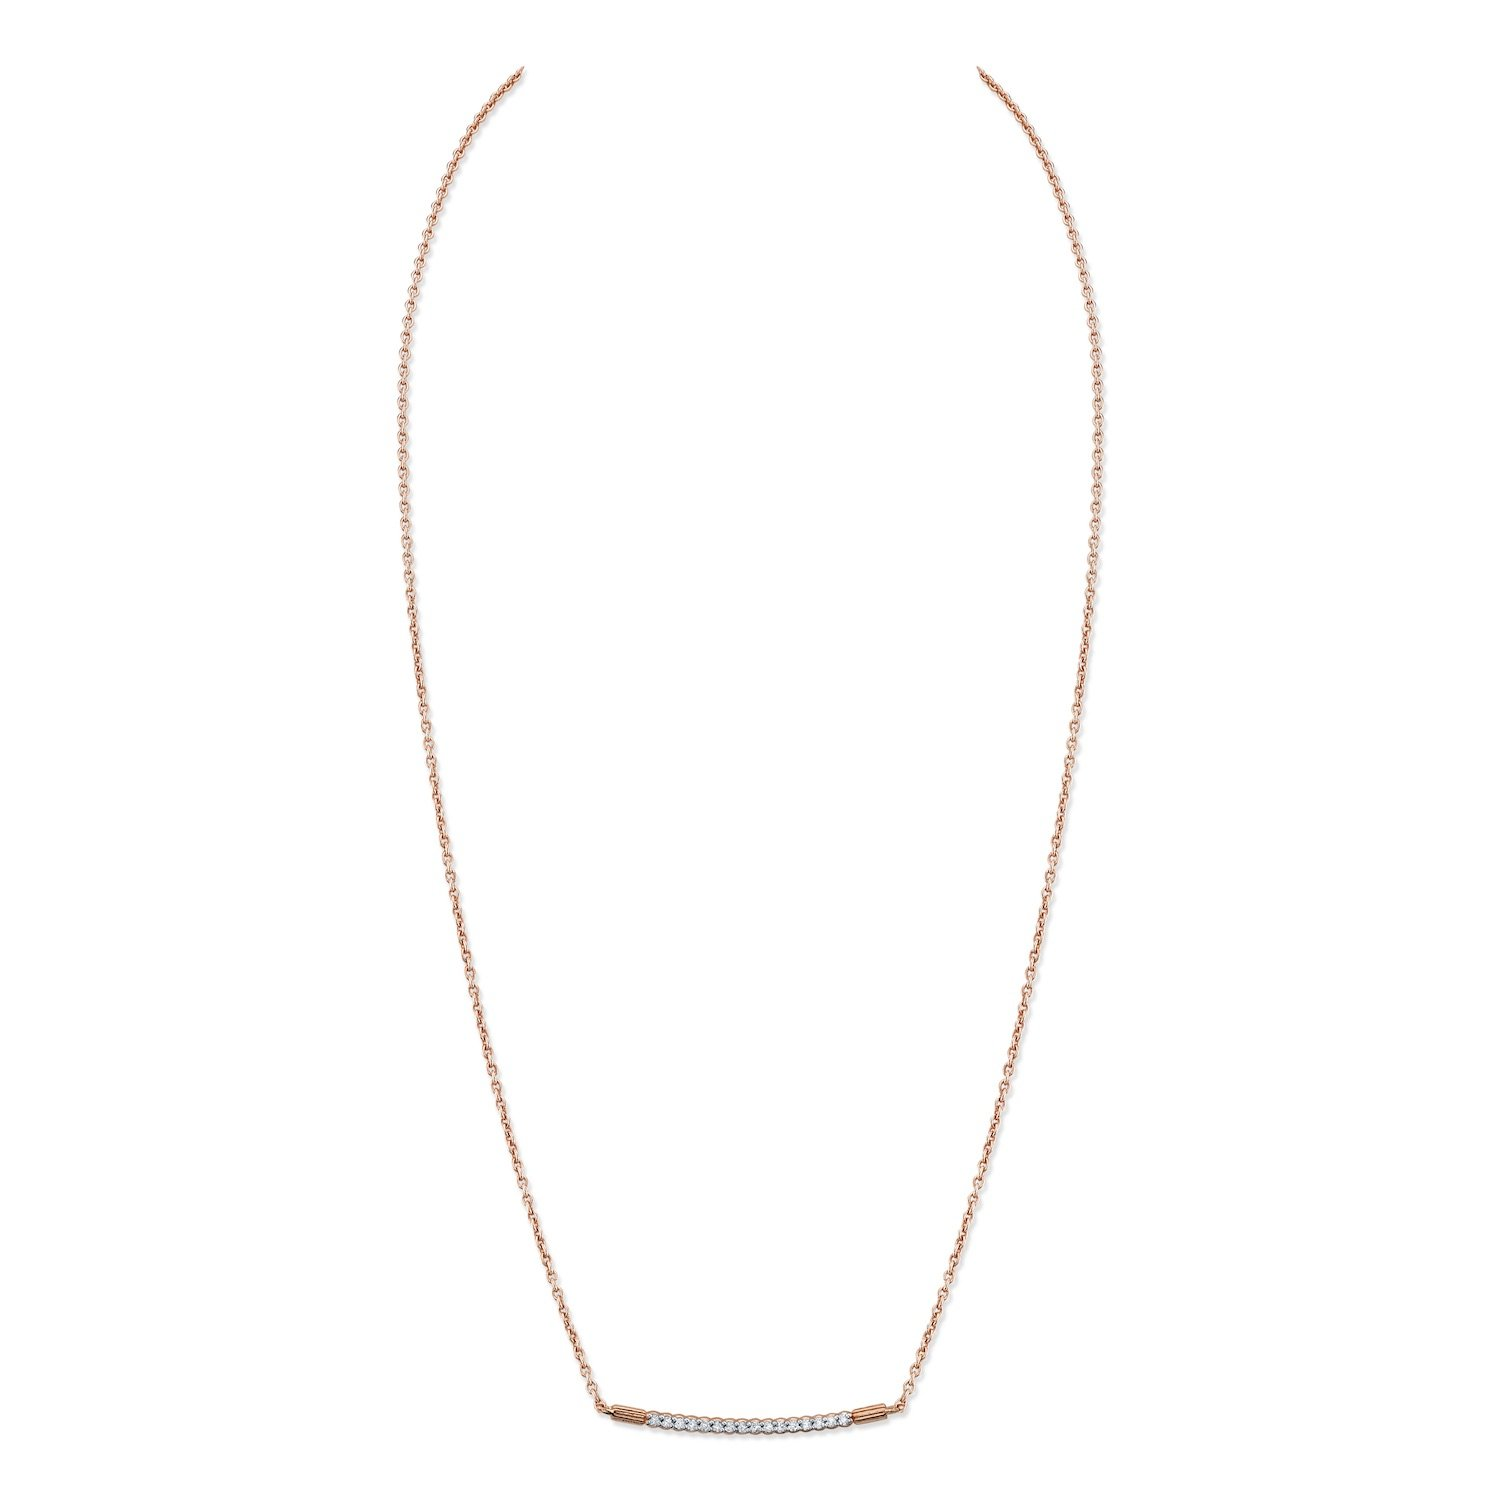 CHARLIZE GADBOIS Sterling Silver Diamond Pendant Necklace, Rose Gold Plated (0.08 cttw,I2-I3 Clarity)